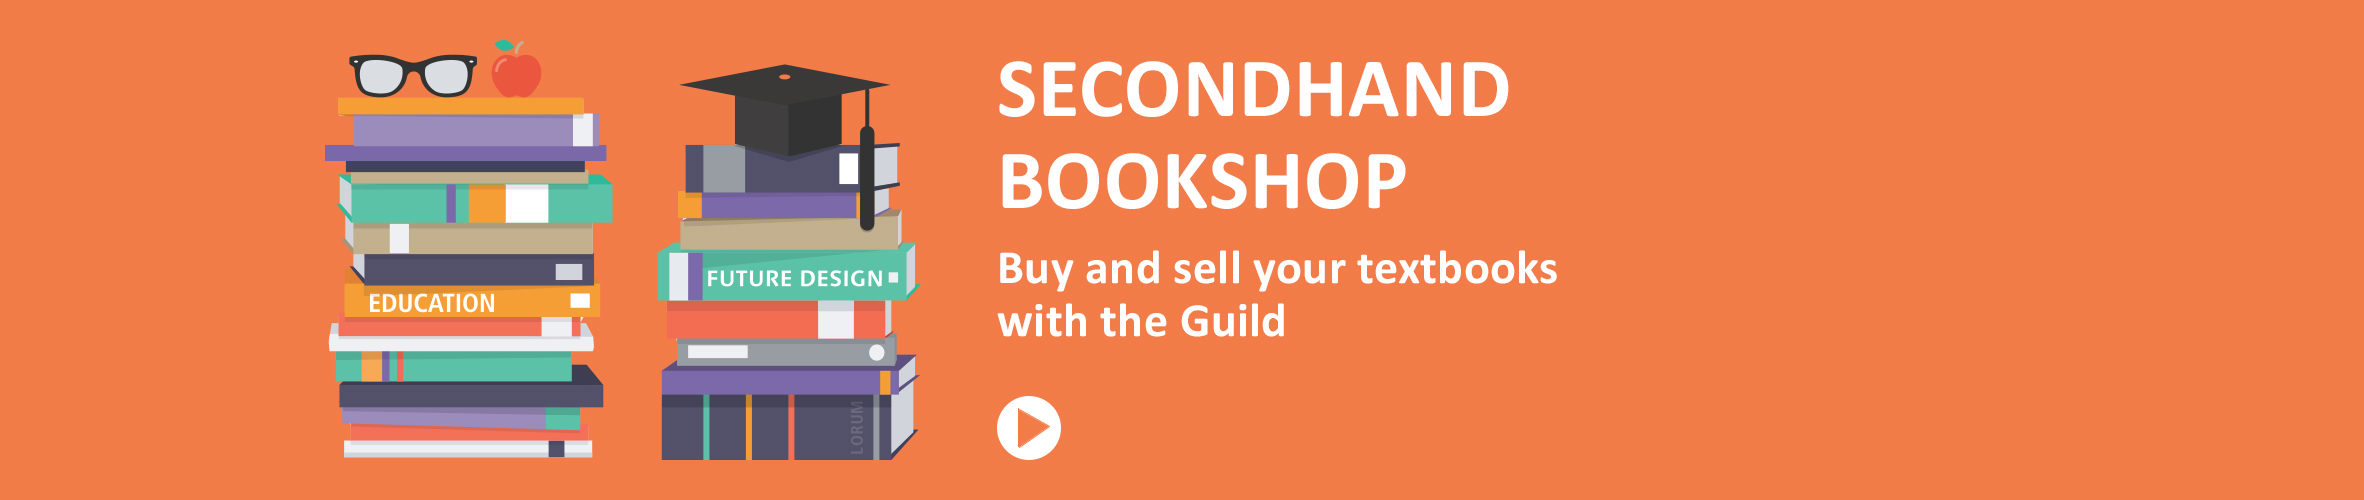 Buy And Sell At Our Secondhand Bookshop